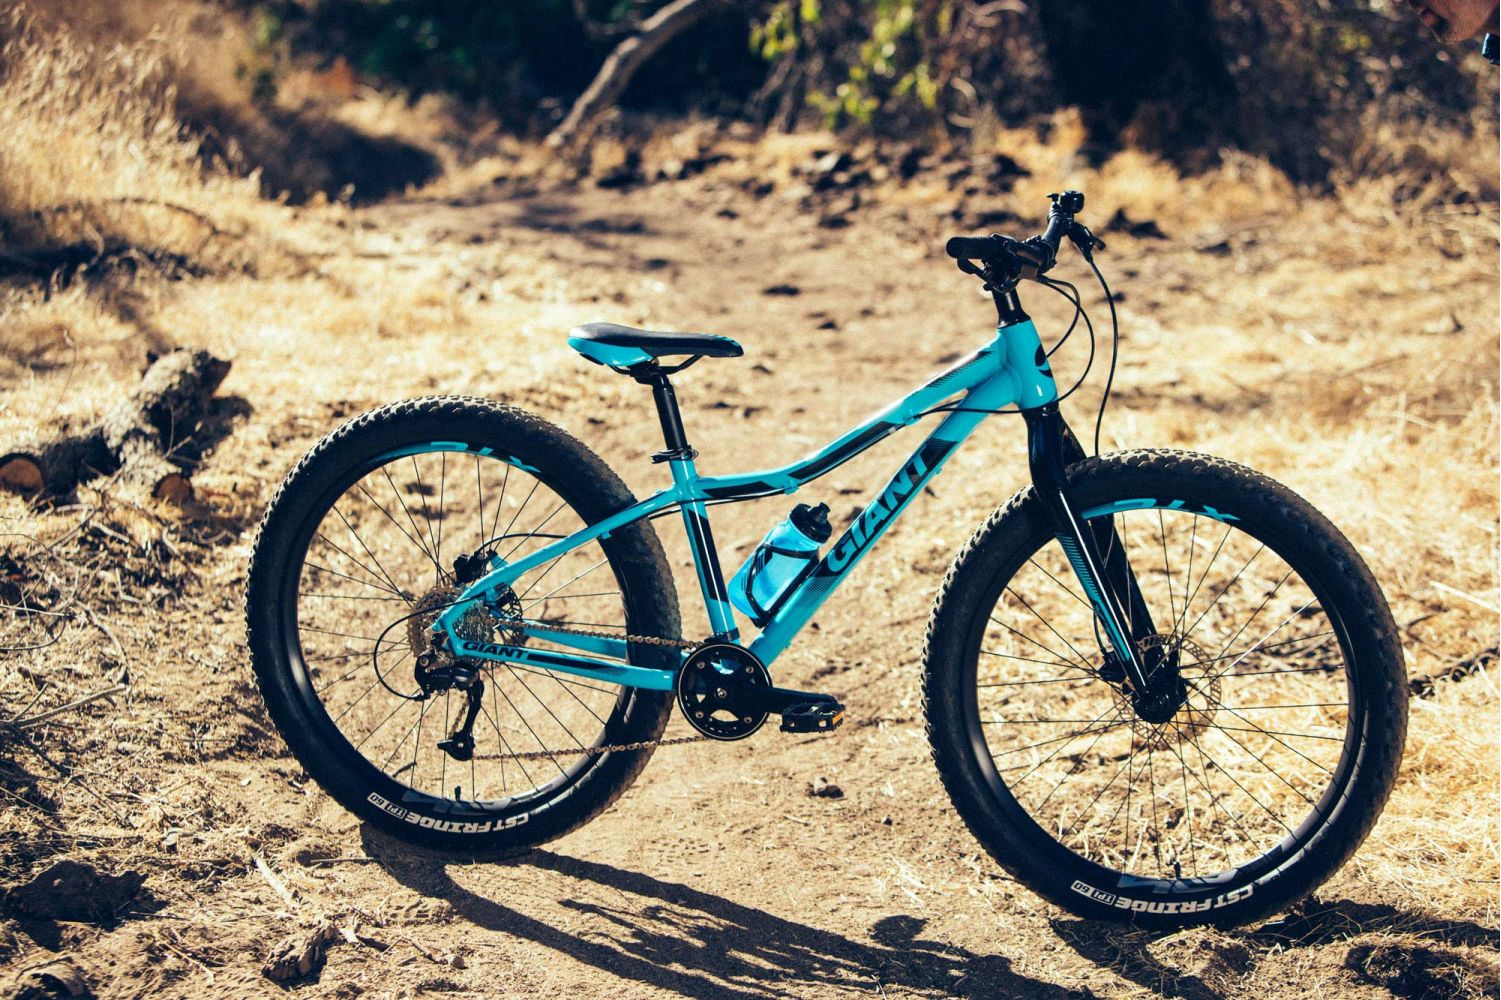 bb710b57 2018 XtC Jr. 26+ | Giant Bicycles Official site